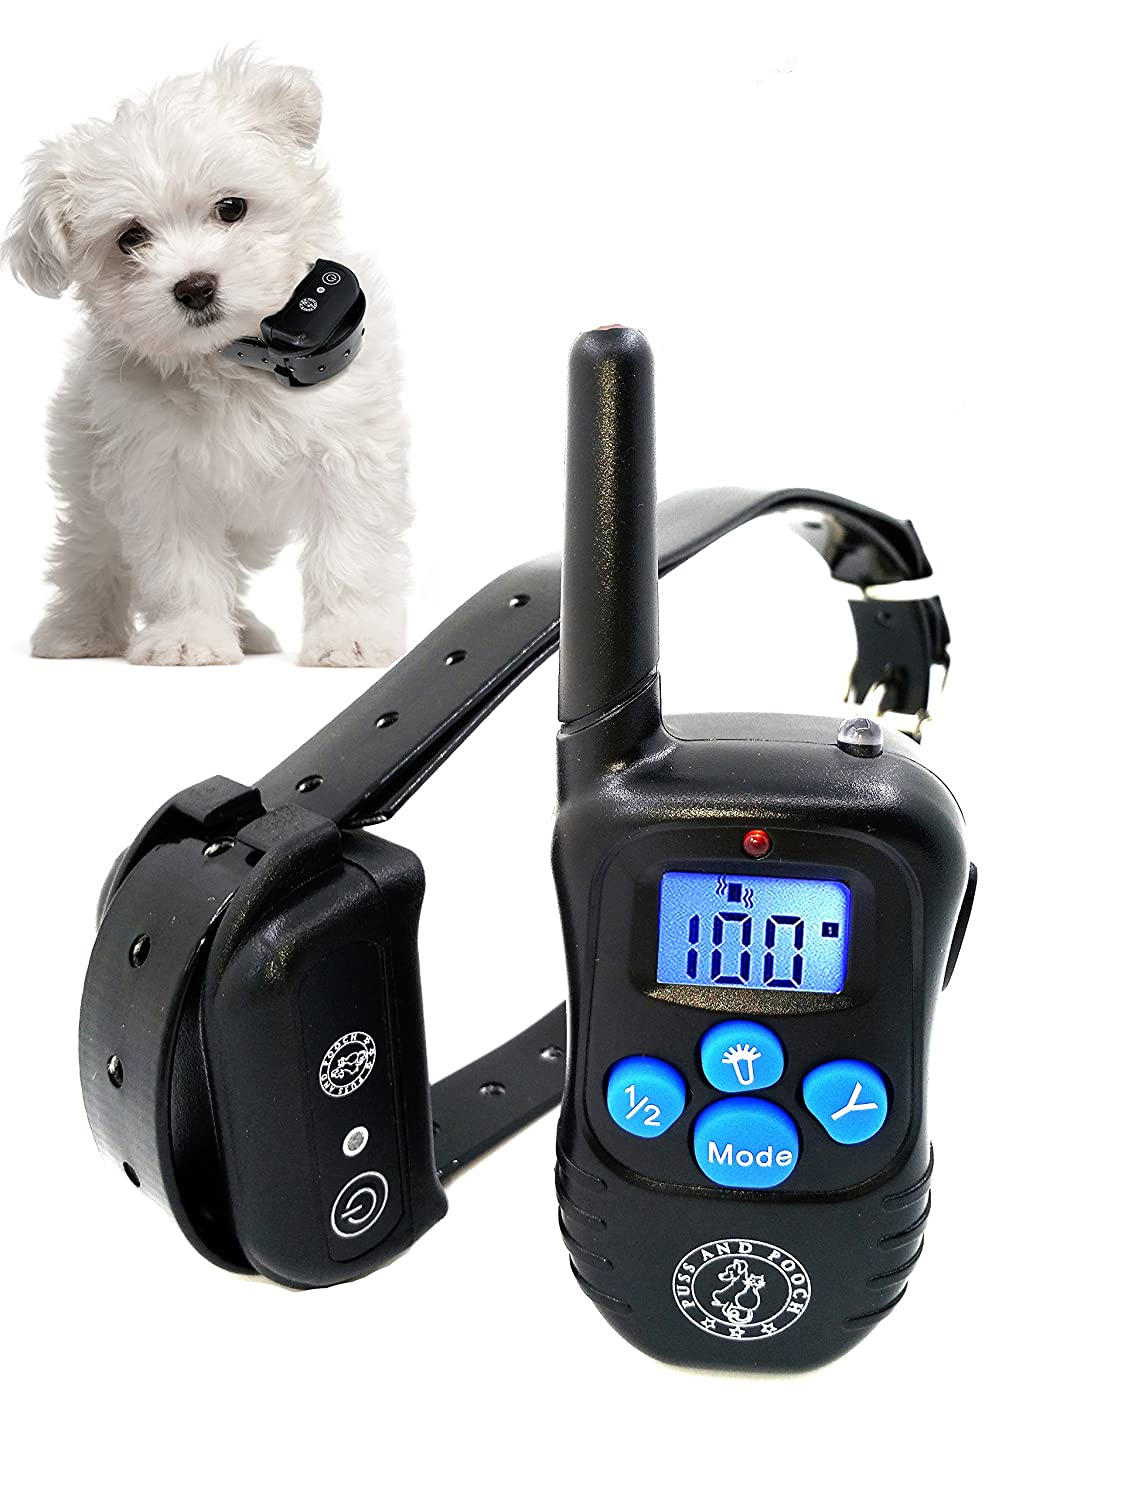 Dog Training Collar Dog Remote Training Collar   300 Meter Range   Static Shock Collar w Humane Vibration & Beep Option   Waterproof Rechargeable Transmitter & Receiver   Safe For Dogs of All Sizes